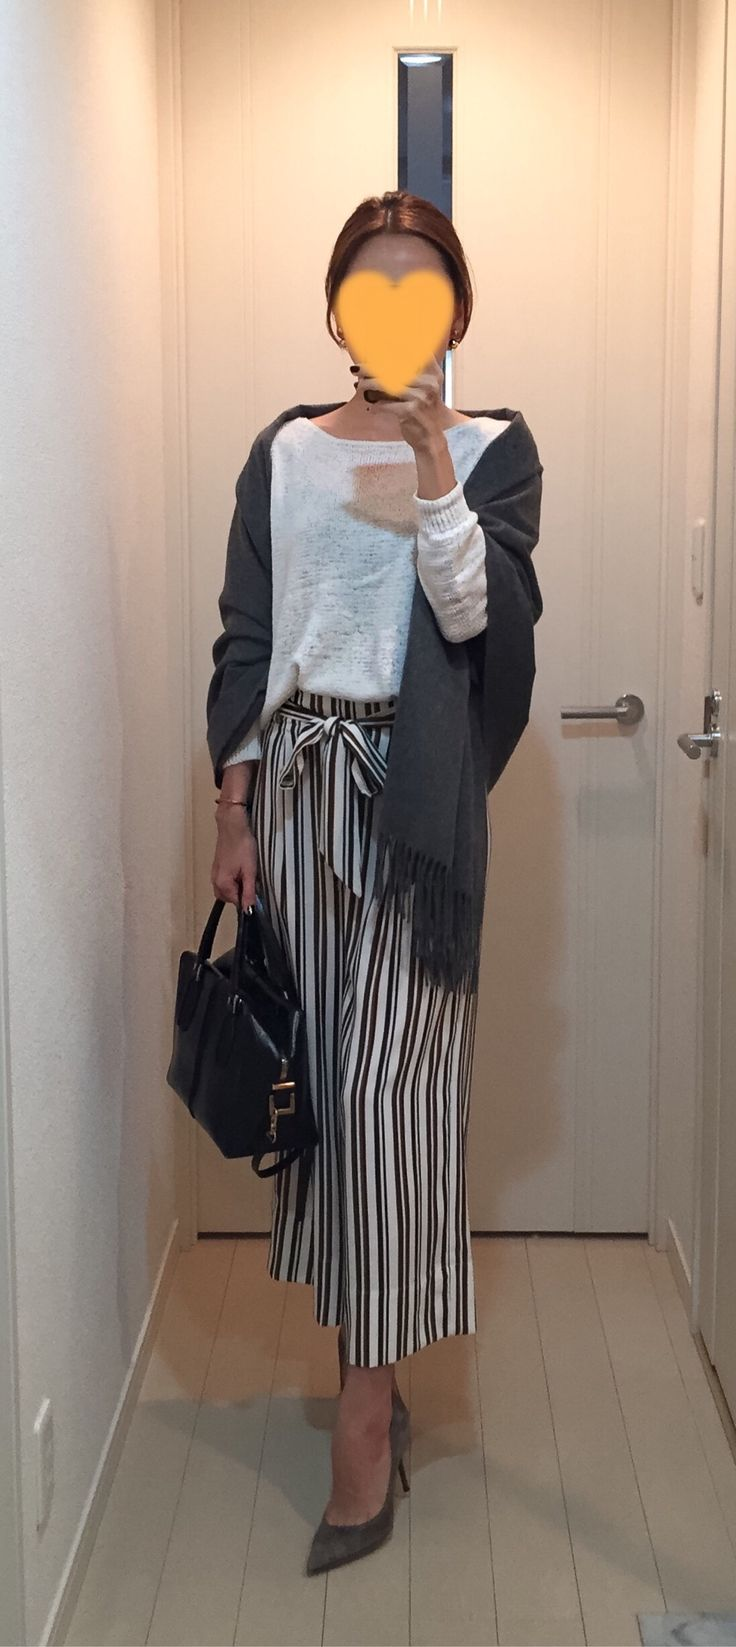 White sweater: Nolley's, Striped pants: ZARA, Grey cashmere scarf: Johnstons, Bag: Tod's, Beige pumps: Jimmy Choo